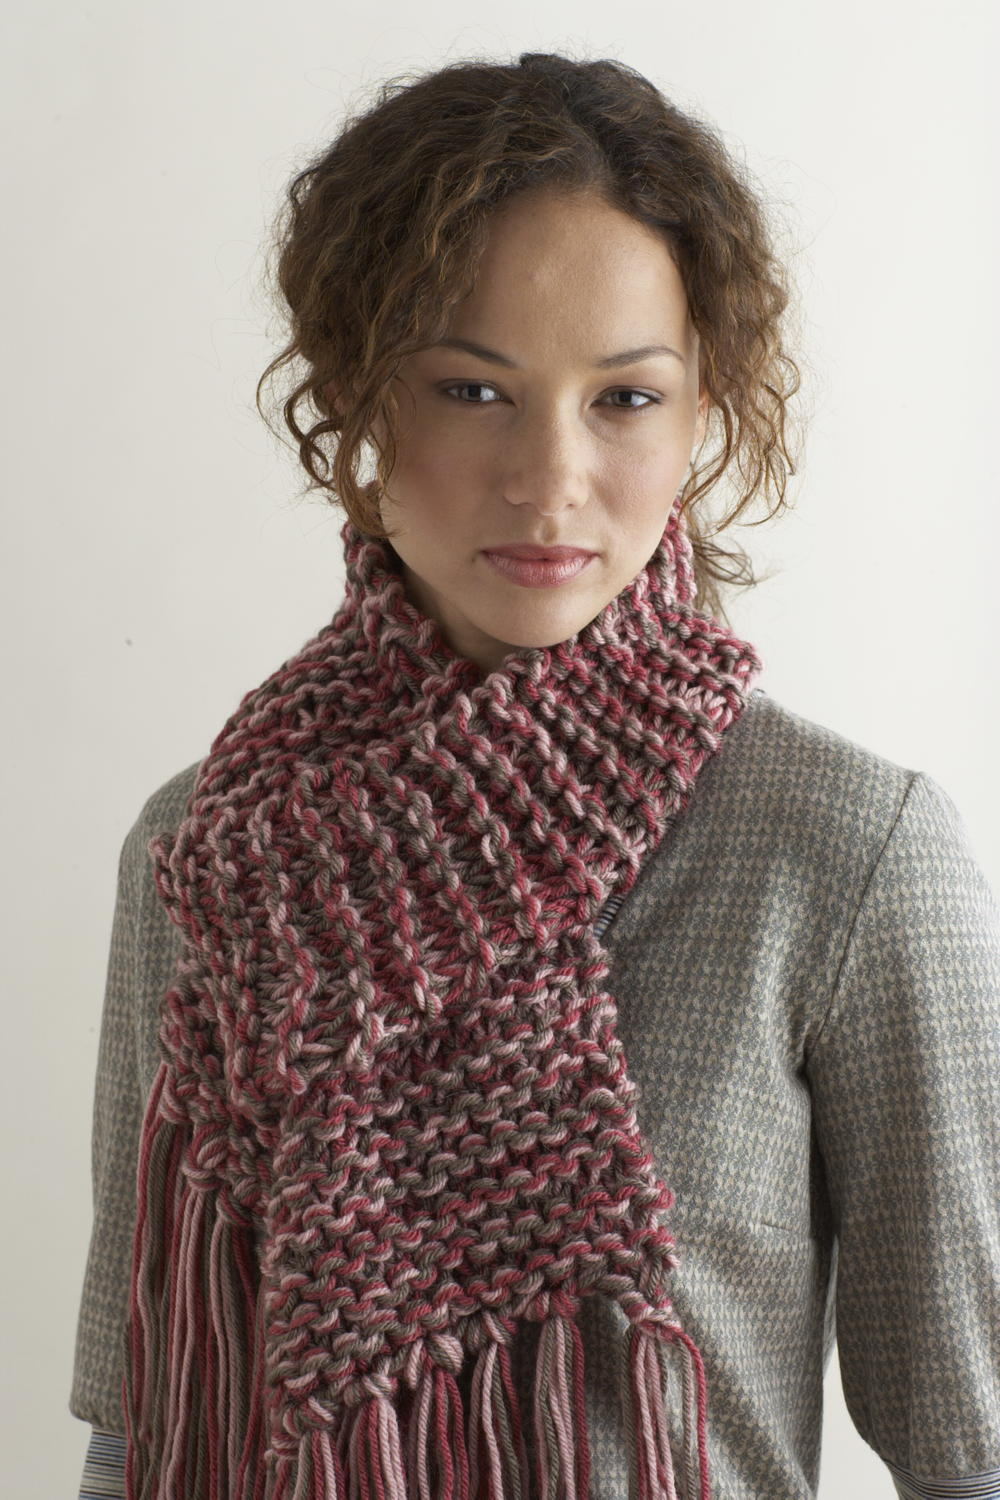 59 free scarf knitting patterns favecrafts knit two hours or less scarf bankloansurffo Image collections